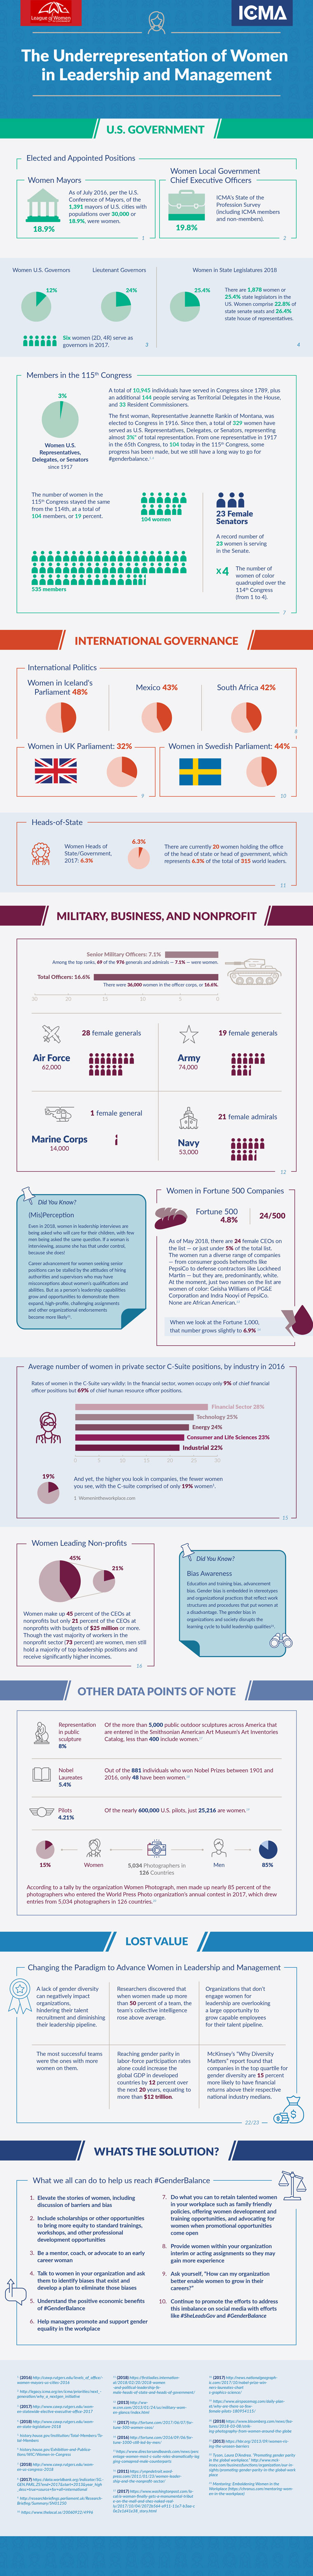 Infographic displaying the under representation of women in leadership and management